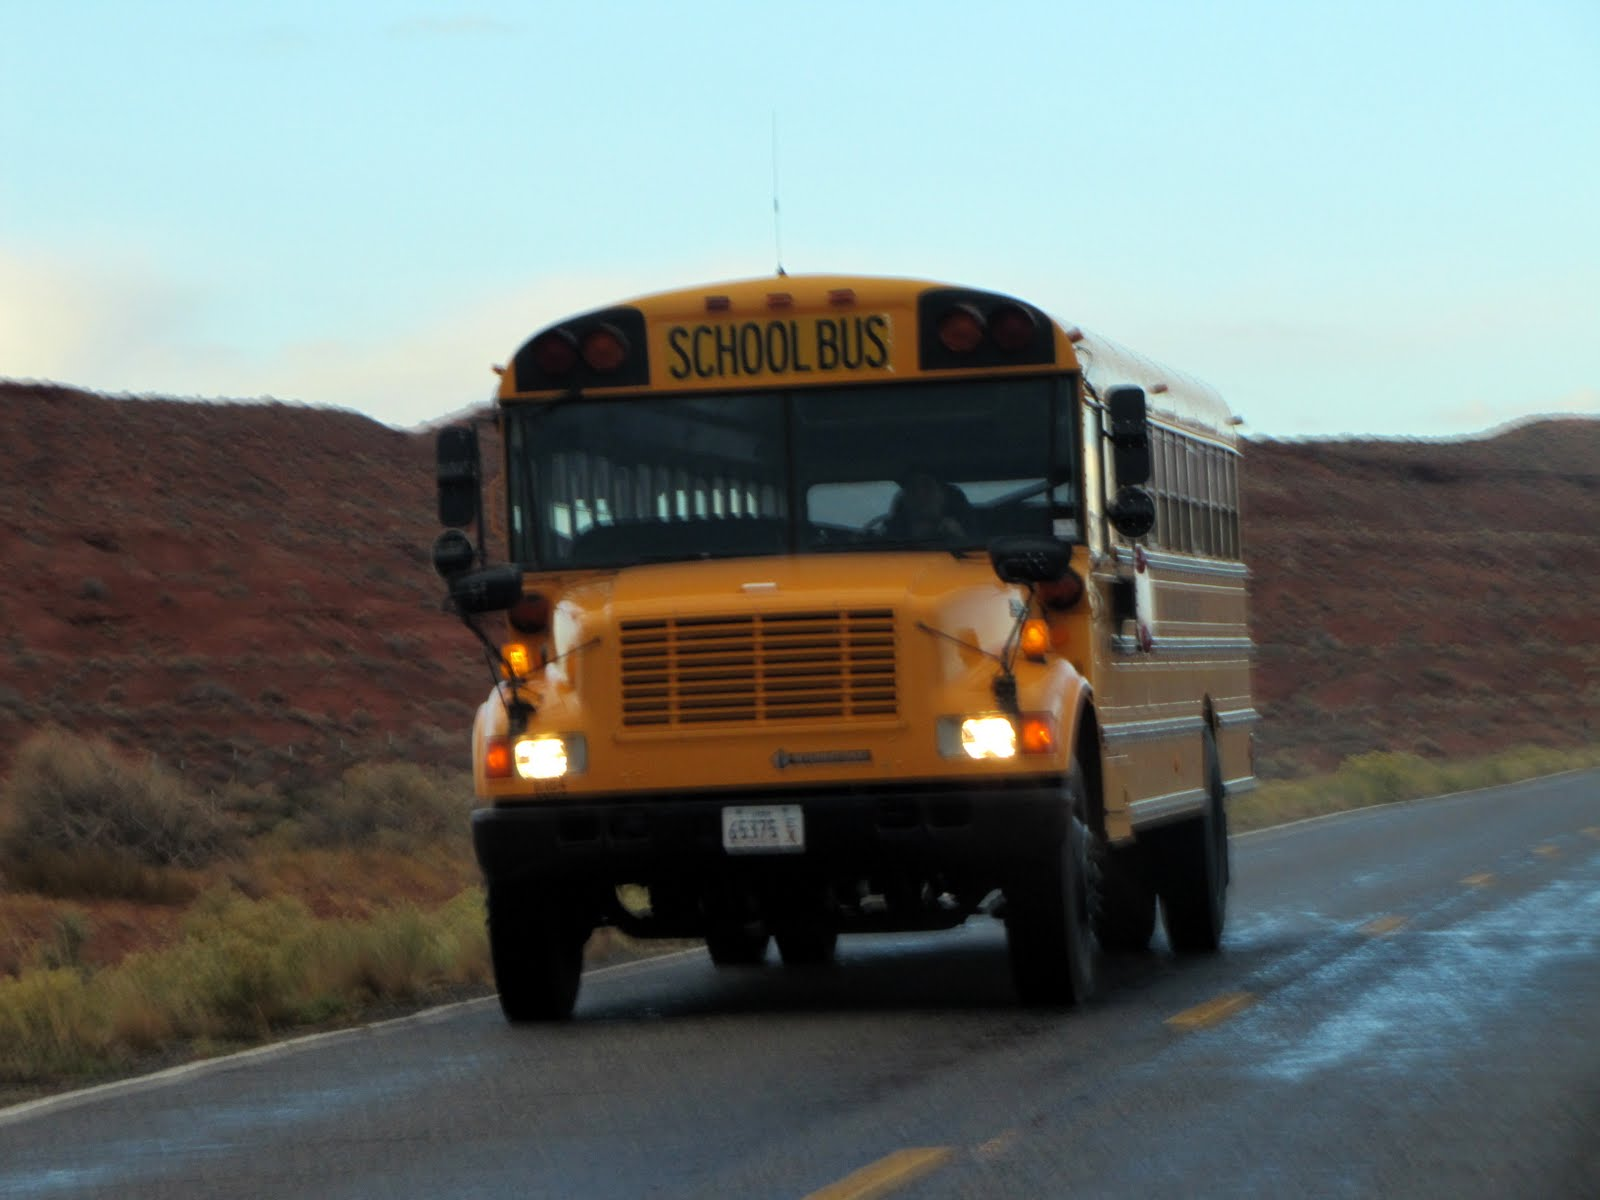 School bus in Monument Valley, Arizona, 1999 International Bluebird